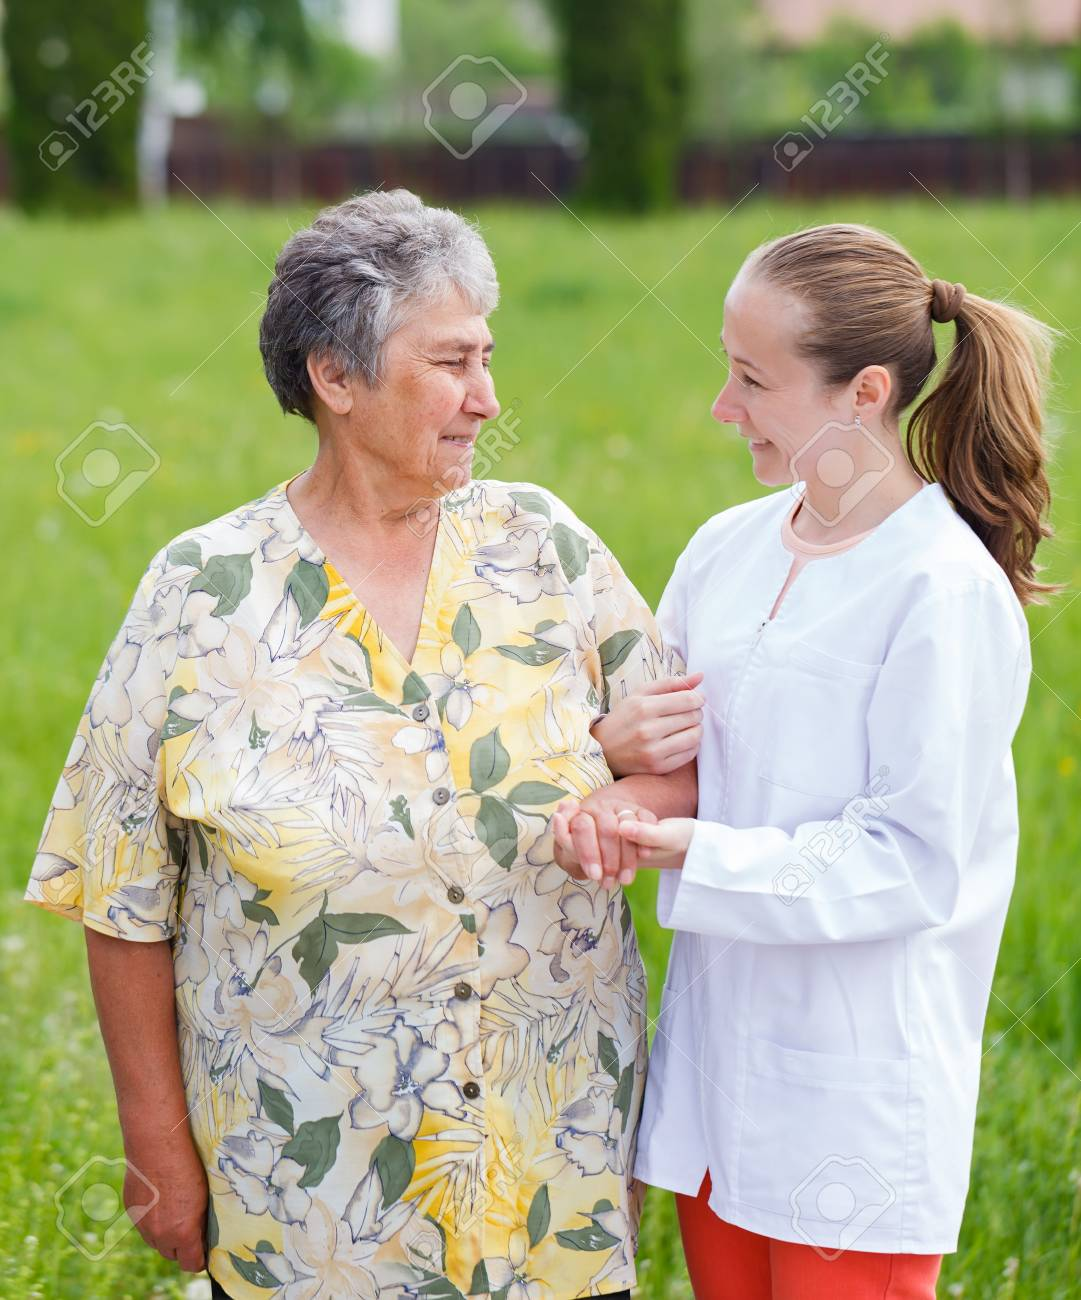 Elderly woman with her caretaker walking in the nature Stock Photo - 19666896